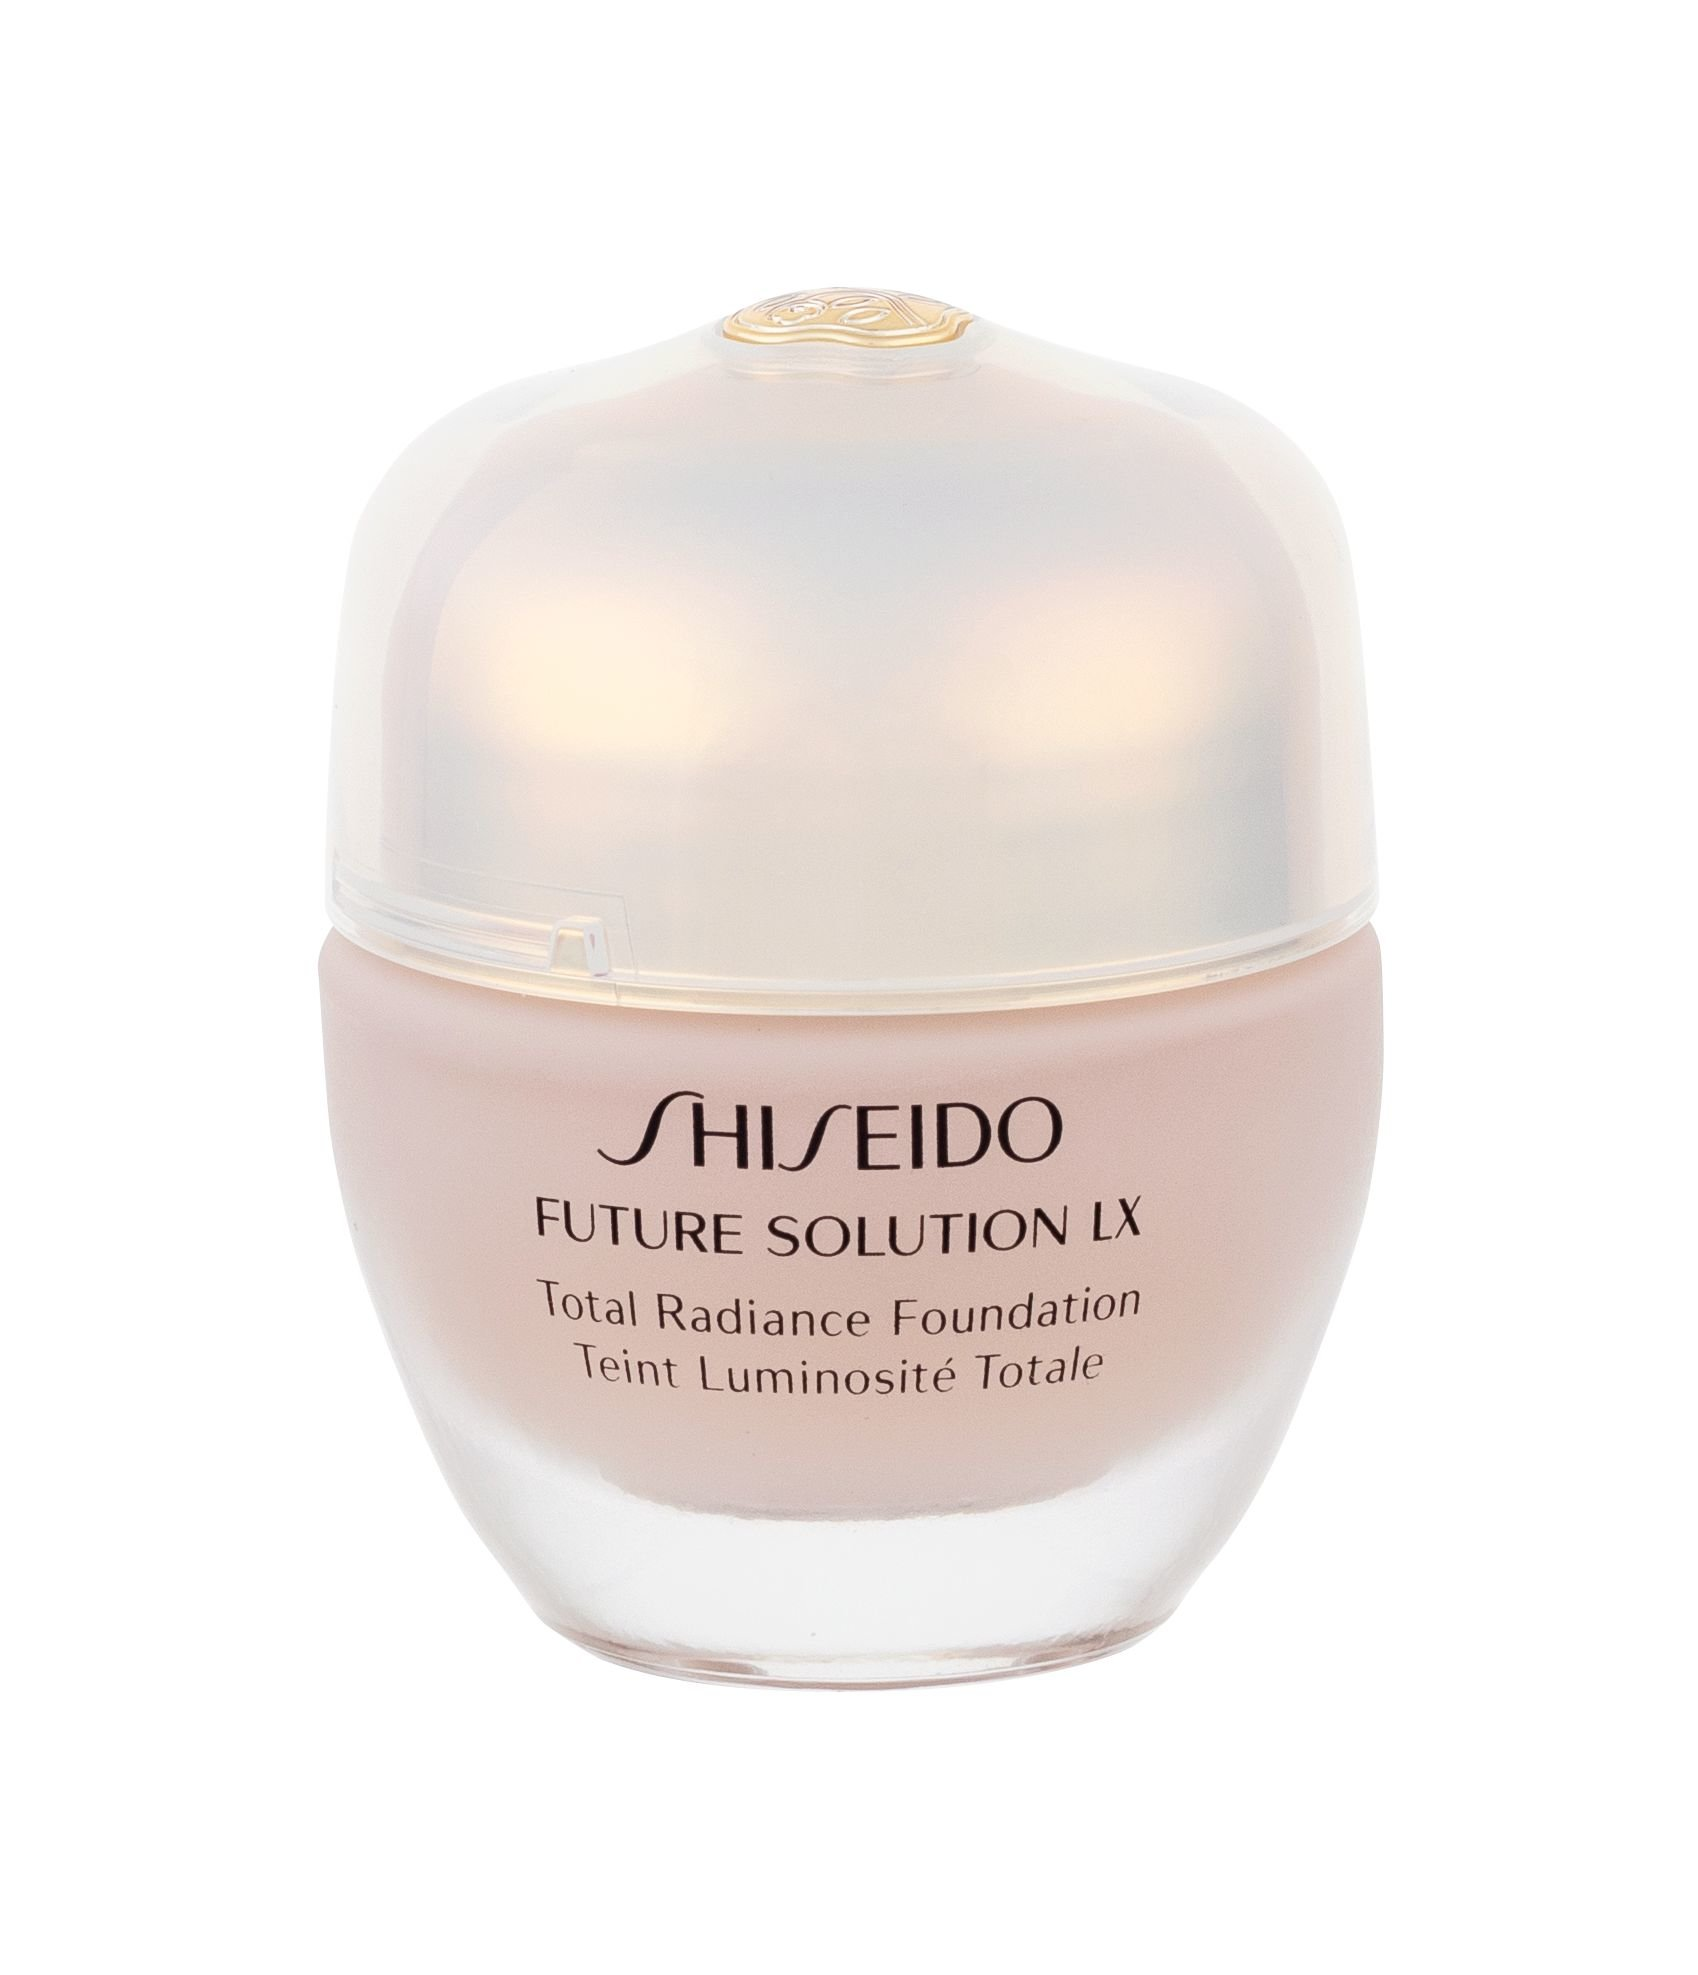 Shiseido Future Solution LX Cosmetic 30ml l20 Natural Light Ivory